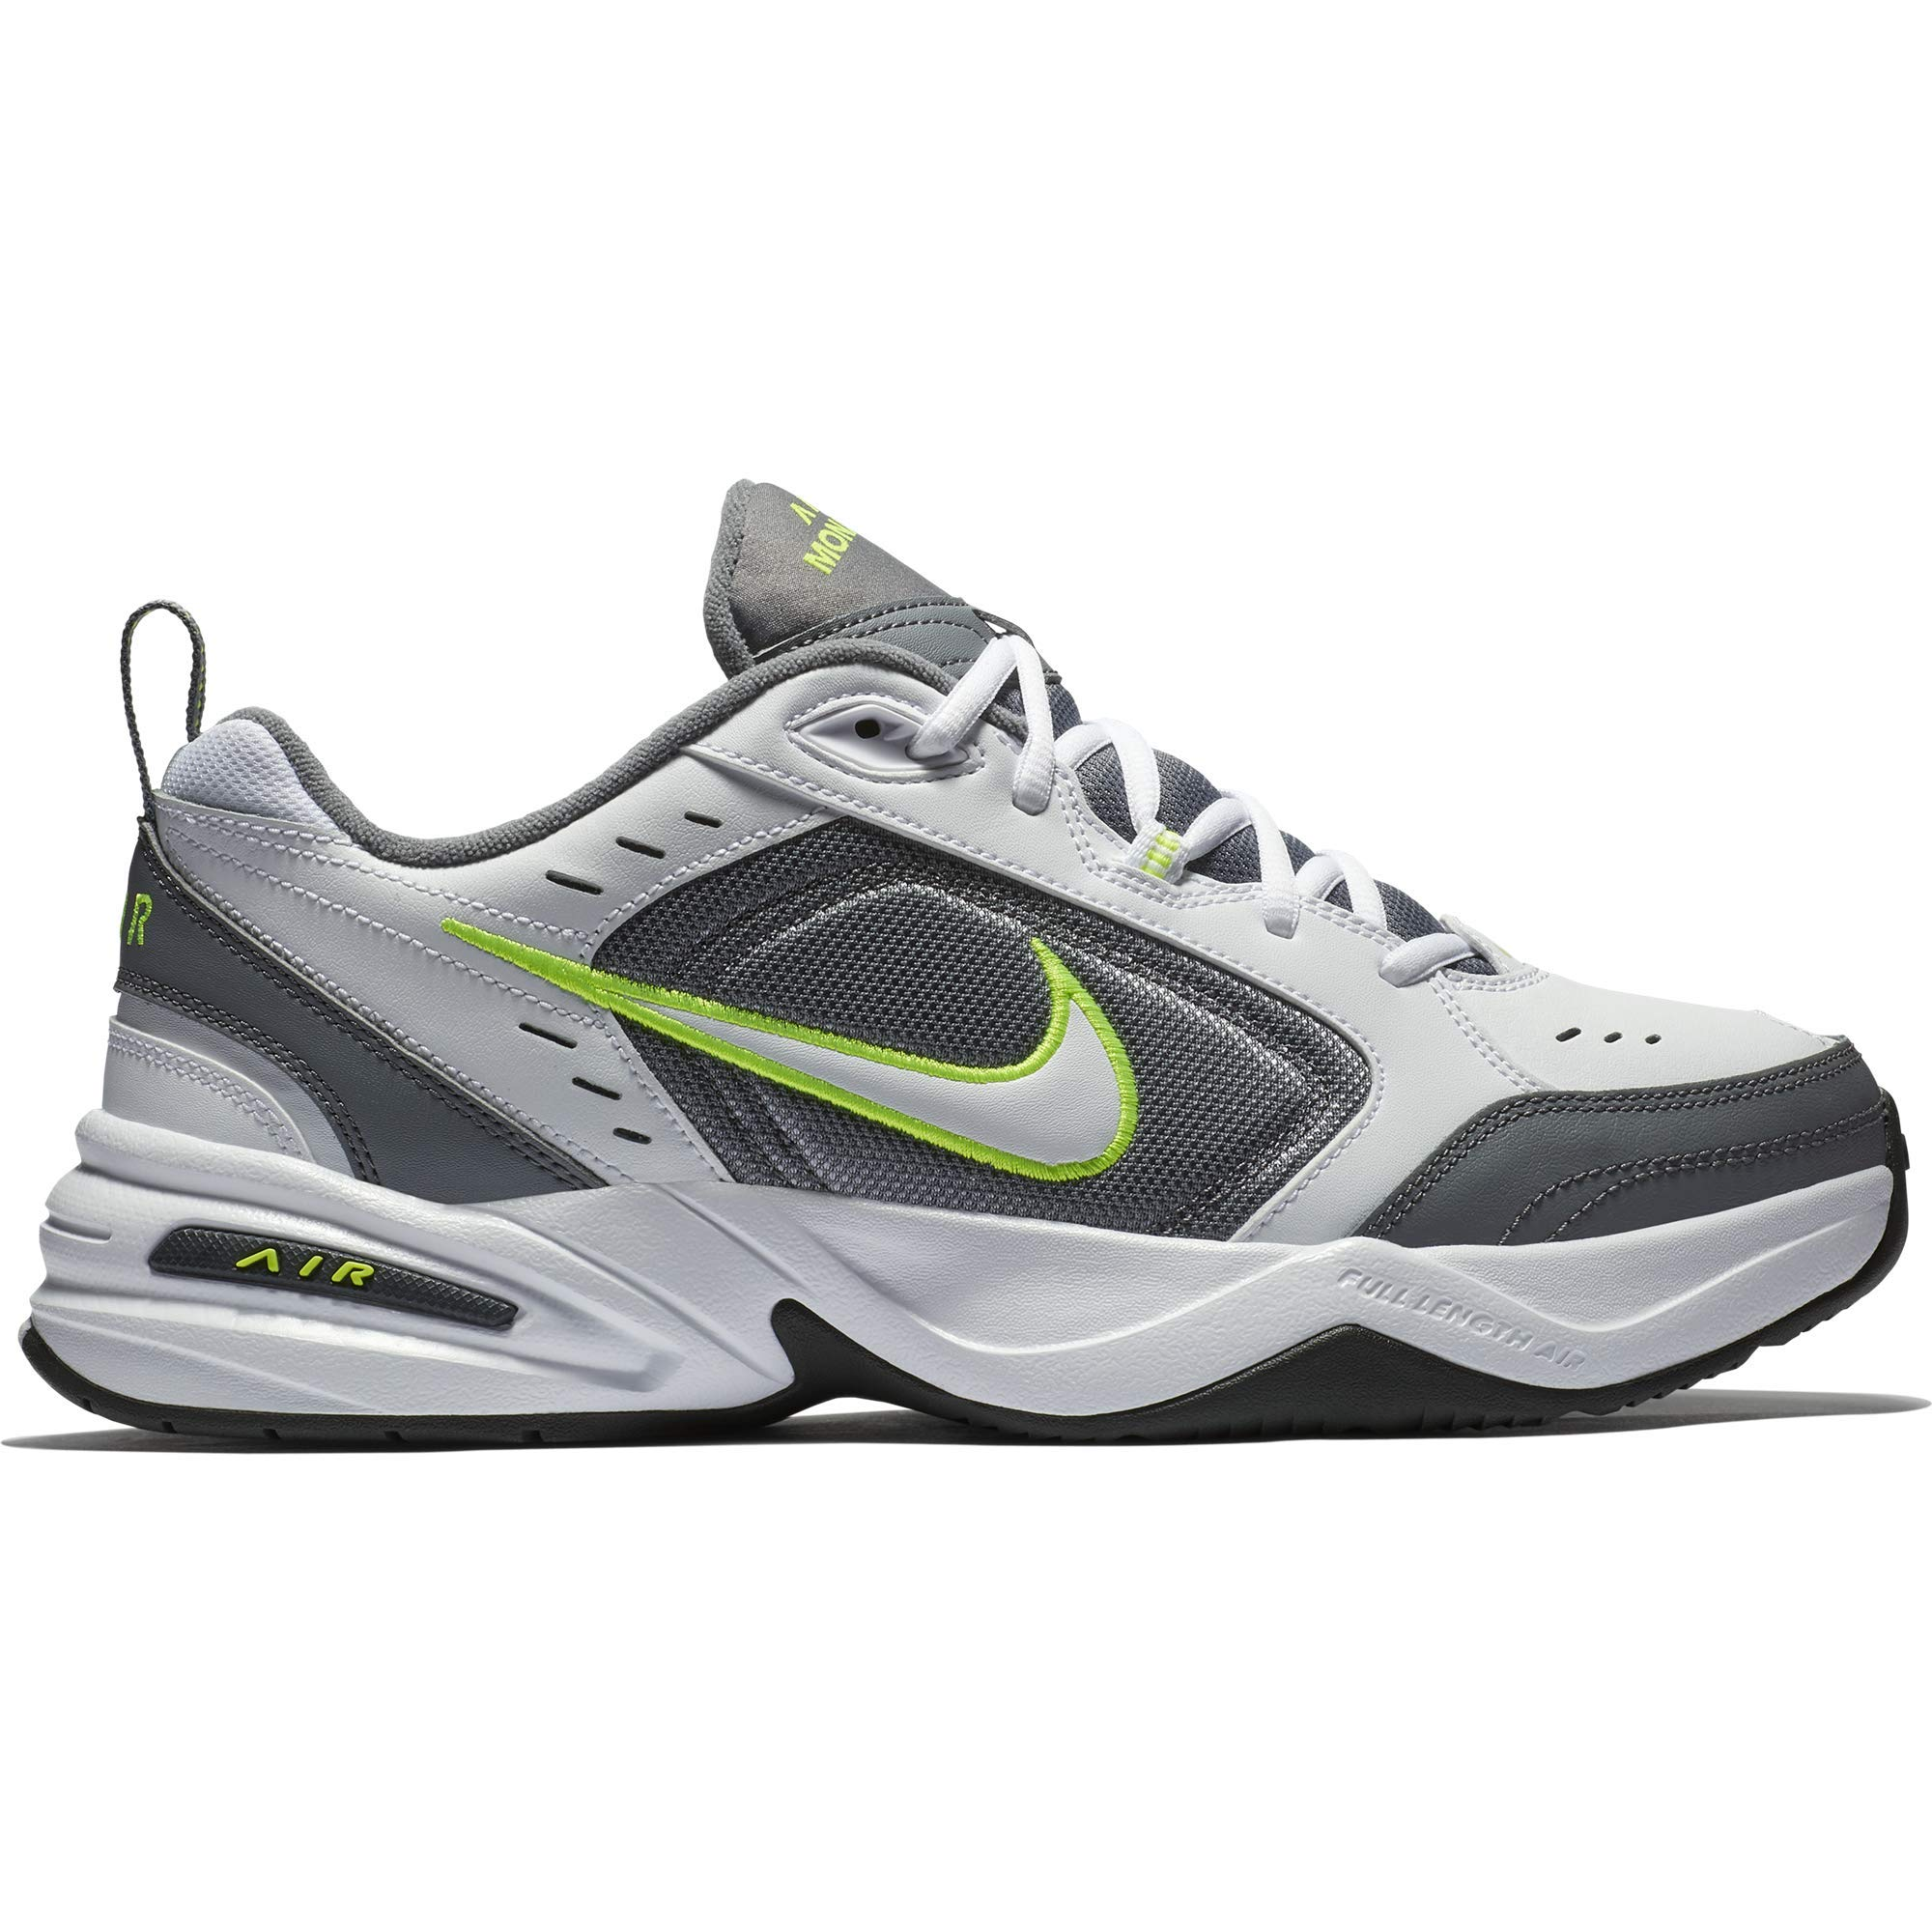 Nike Men's Air Monarch IV Cross Trainer, White-Cool Grey-Anthracite, 6.5 Regular US by Nike (Image #8)